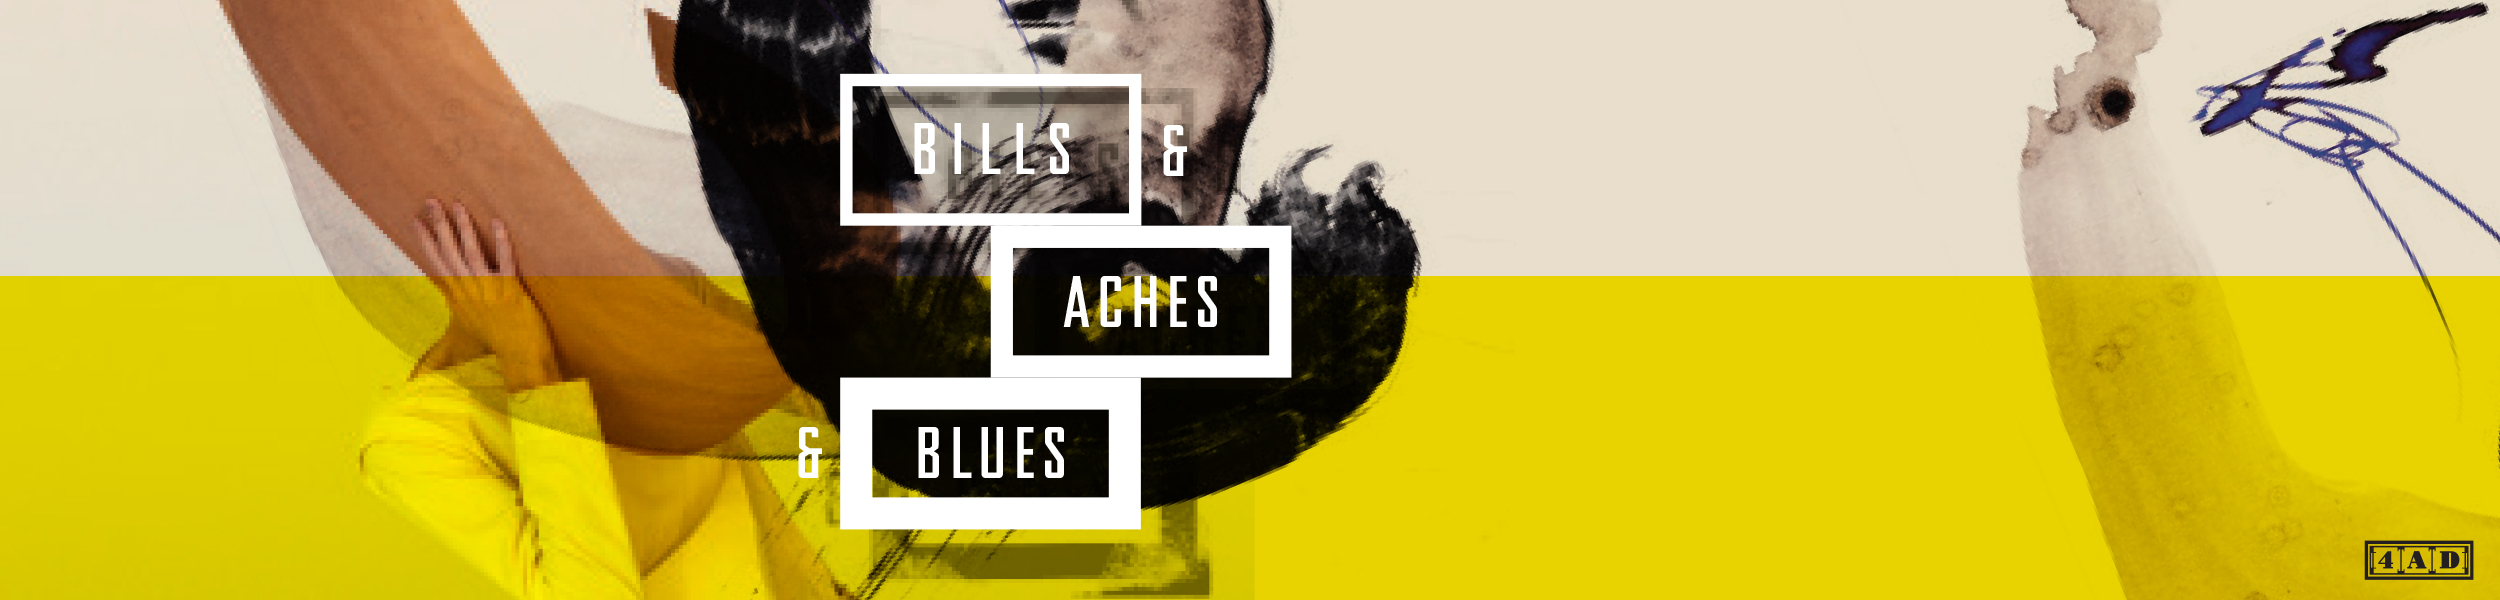 4AD - Four New 'Bills & Aches & Blues' Tracks Out Today